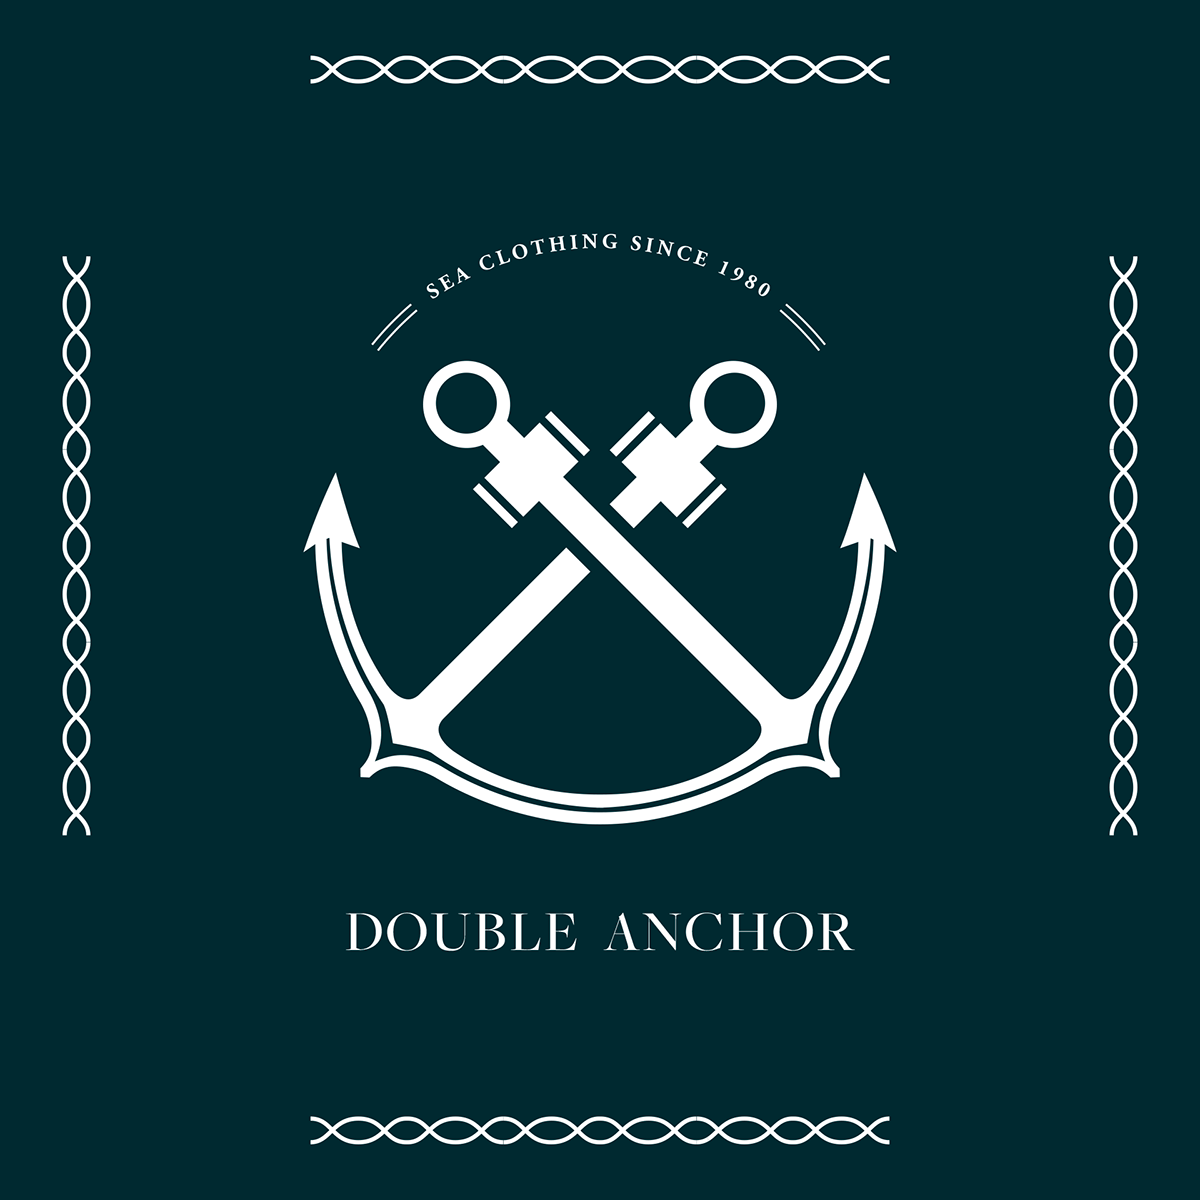 Double anchor logo design